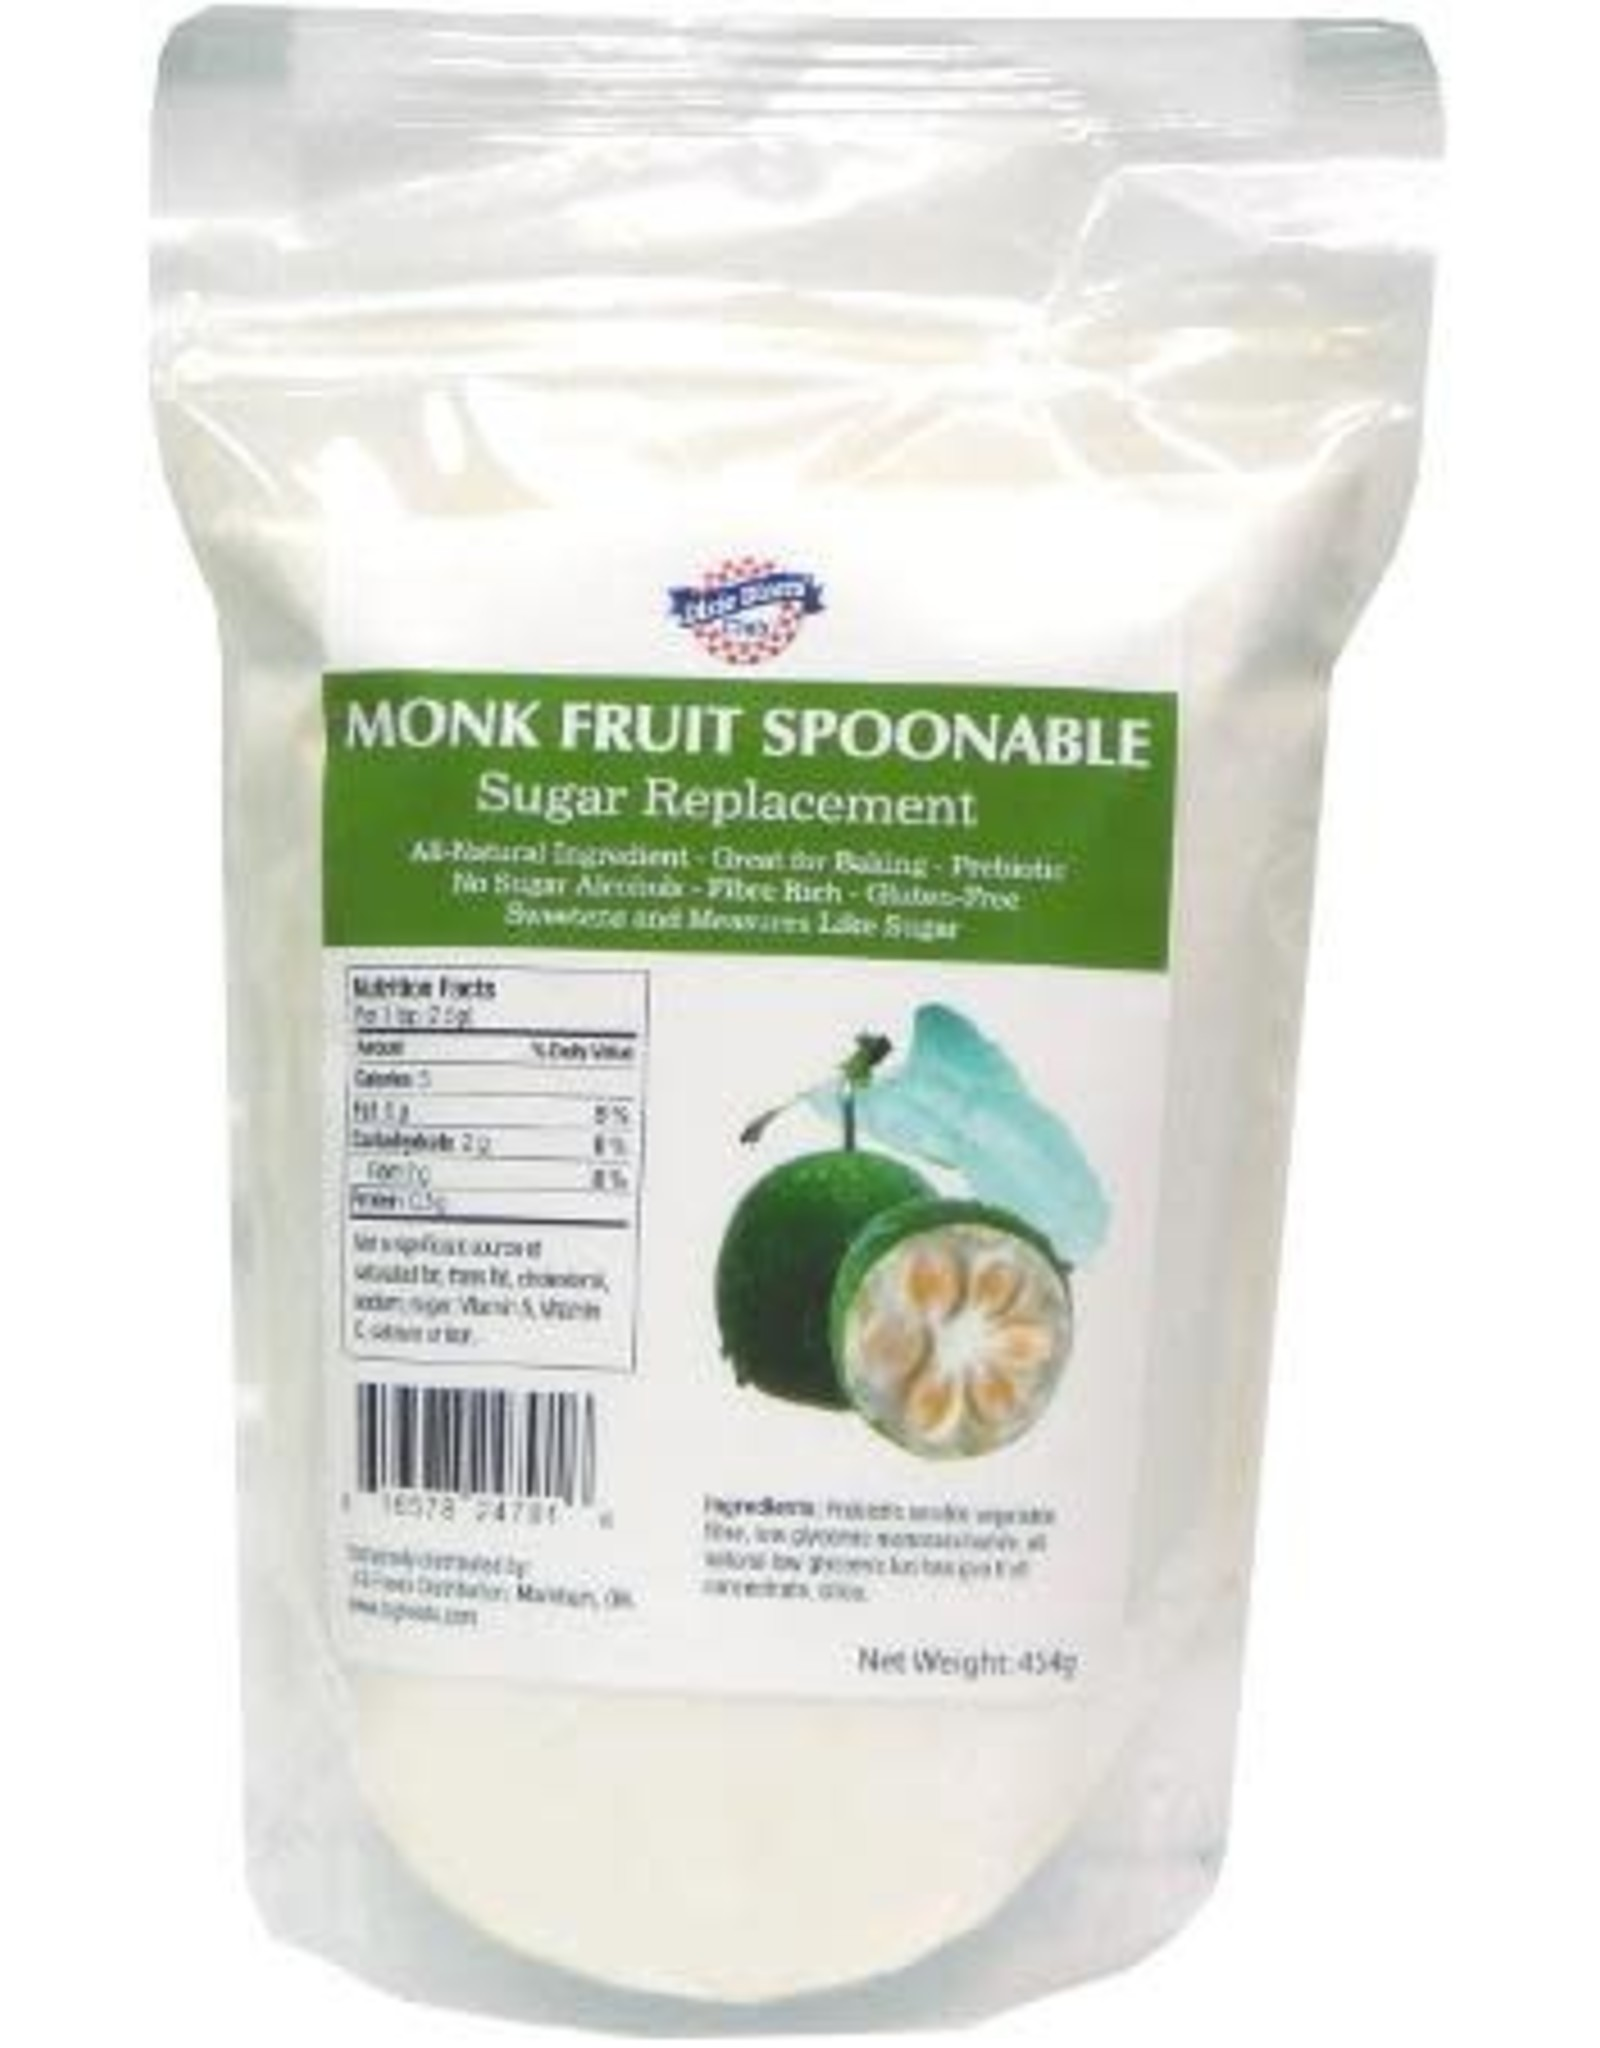 Indigo Dixie Diner-Monk Fruit Spoonable Natural Sugar Replacement, 454g